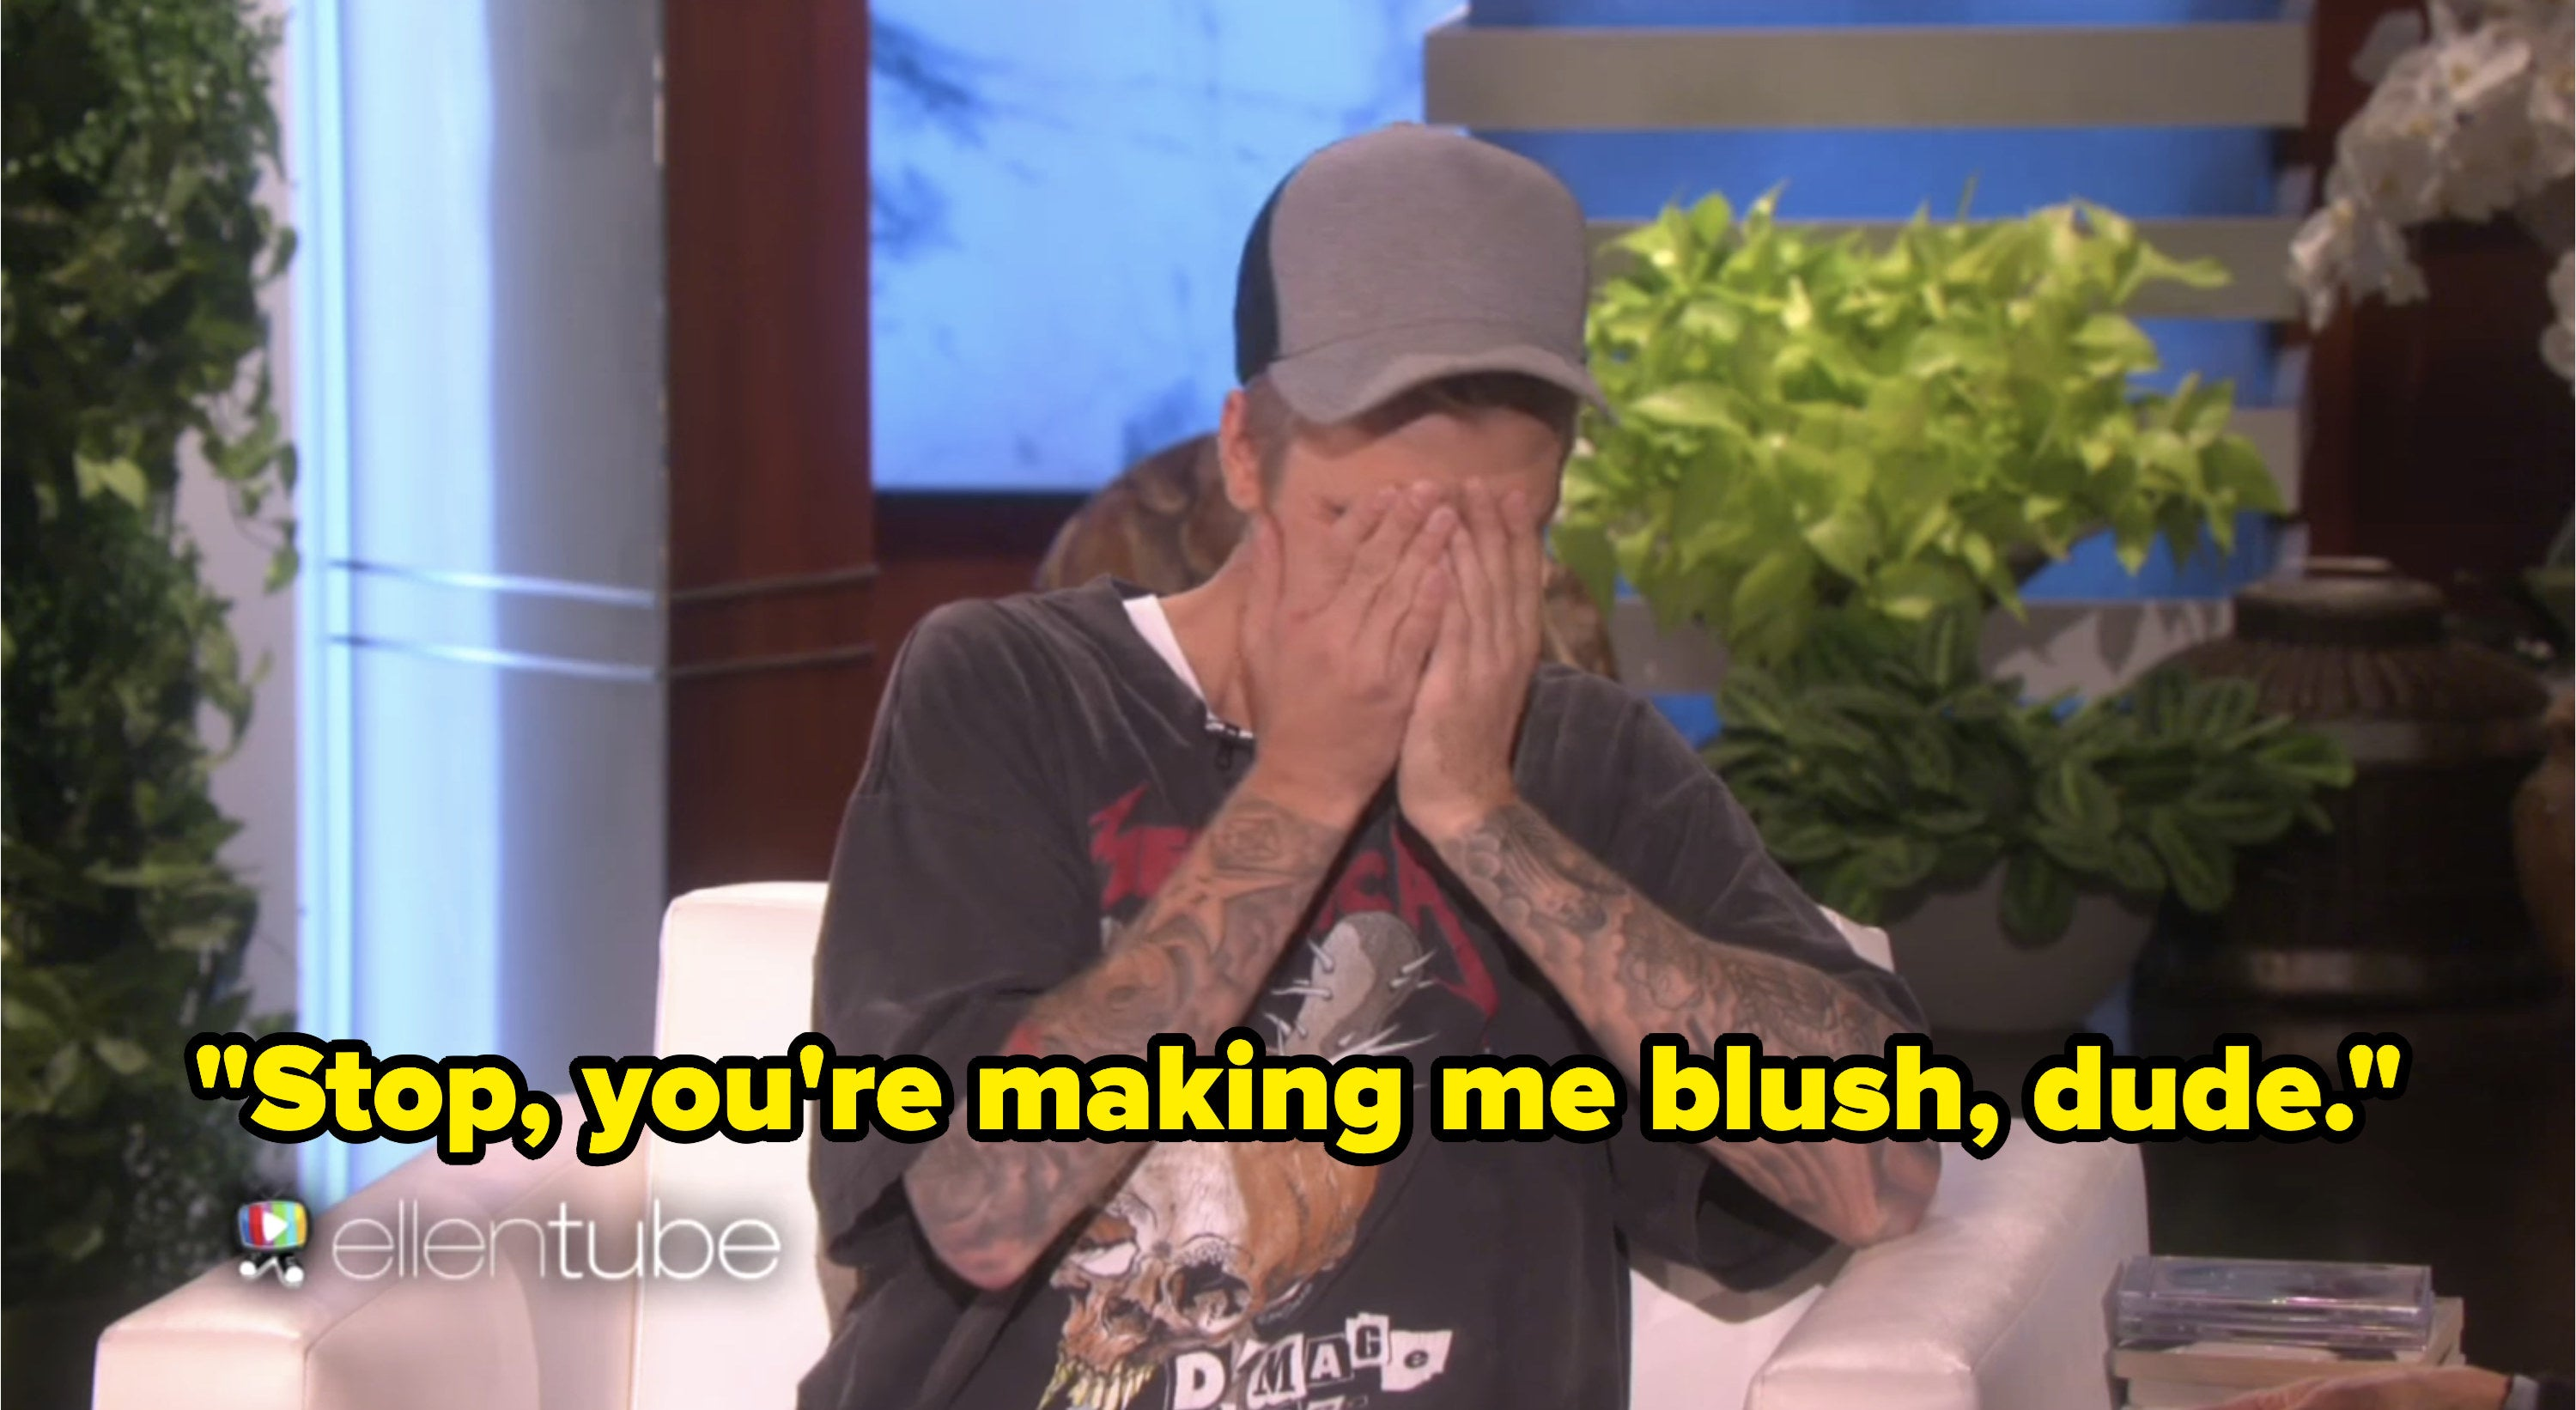 """Justin Bieber appearing on The Ellen Show and saying """"Stop, you're making me blush dude"""""""